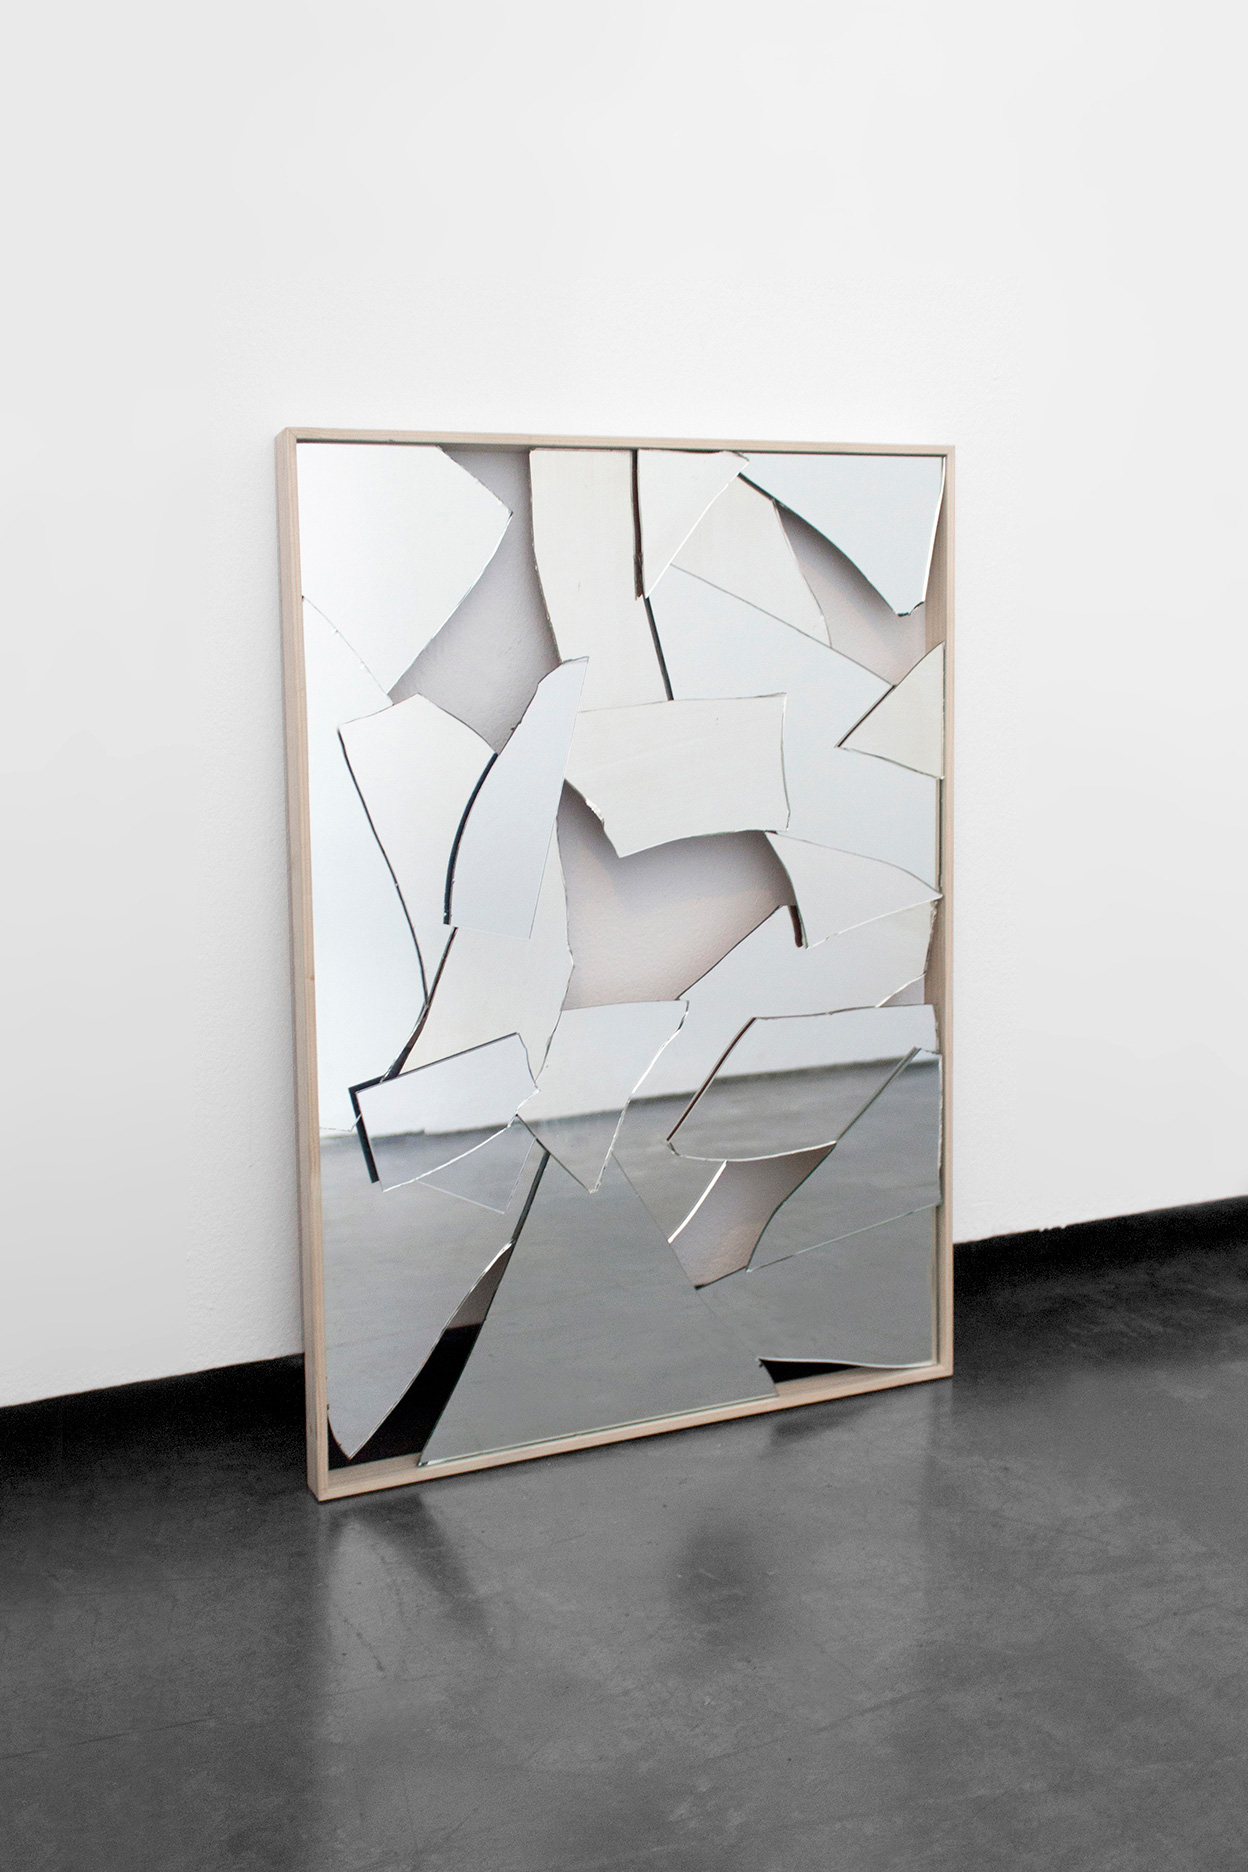 Carla Cascales' Sculpture Project, Incomplete Perception | Yellowtrace